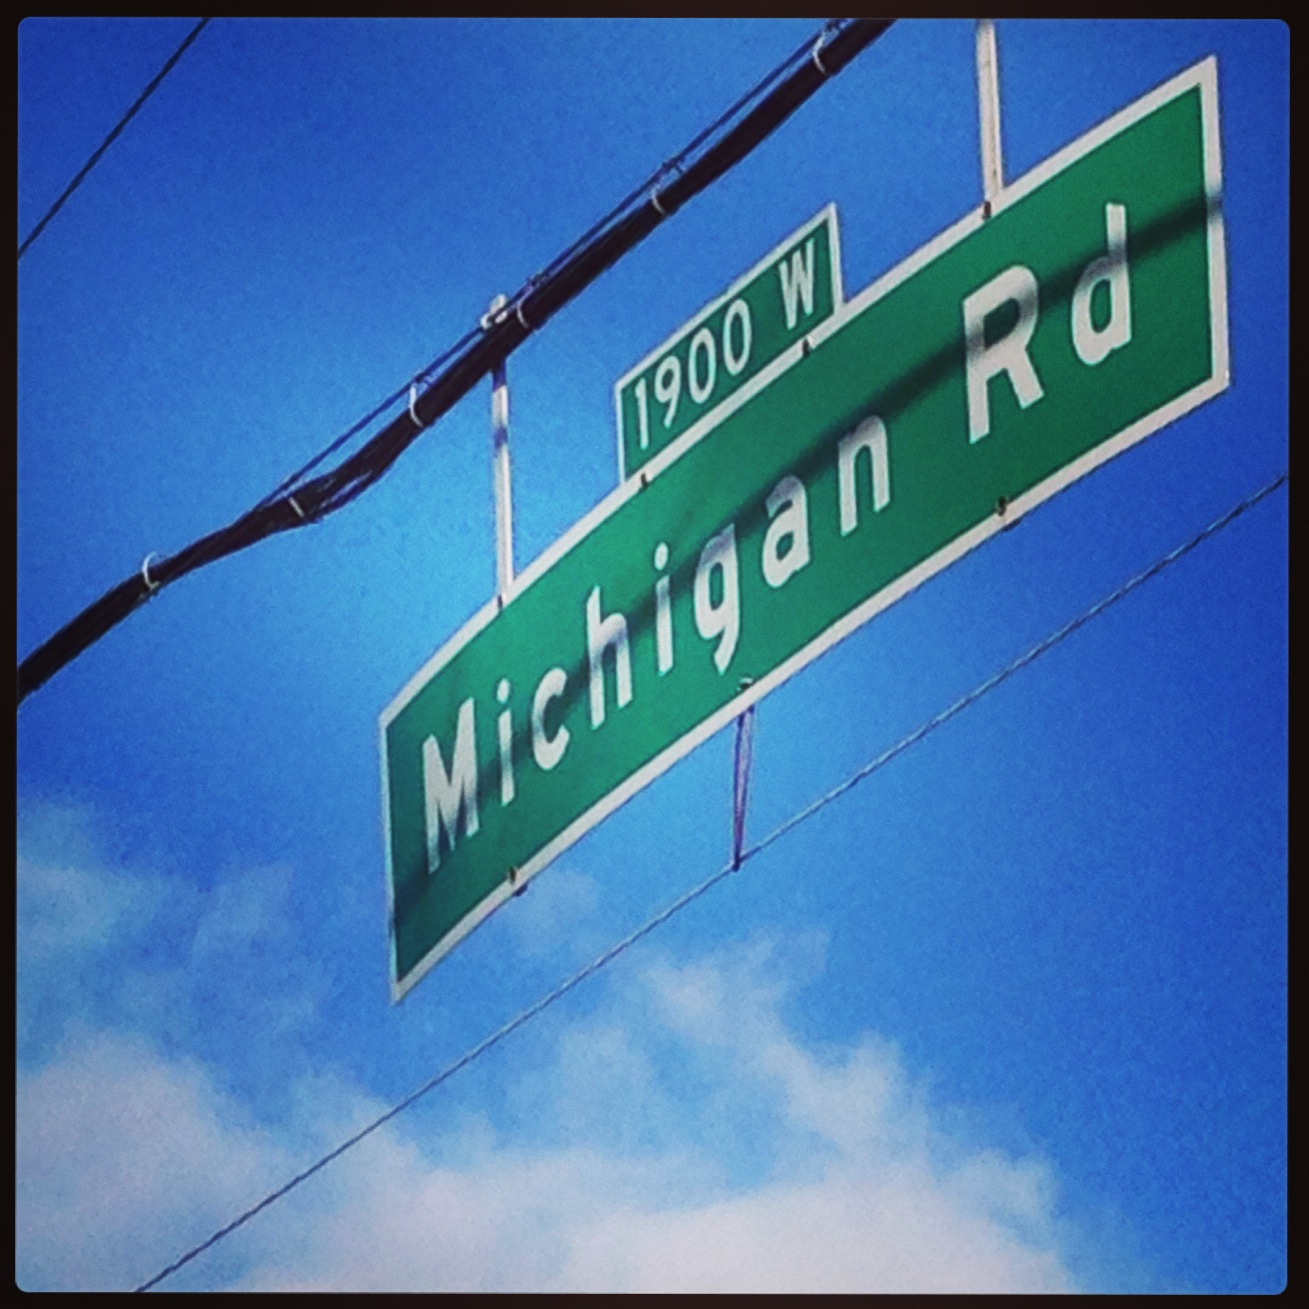 What's in a Name: Michigan Road